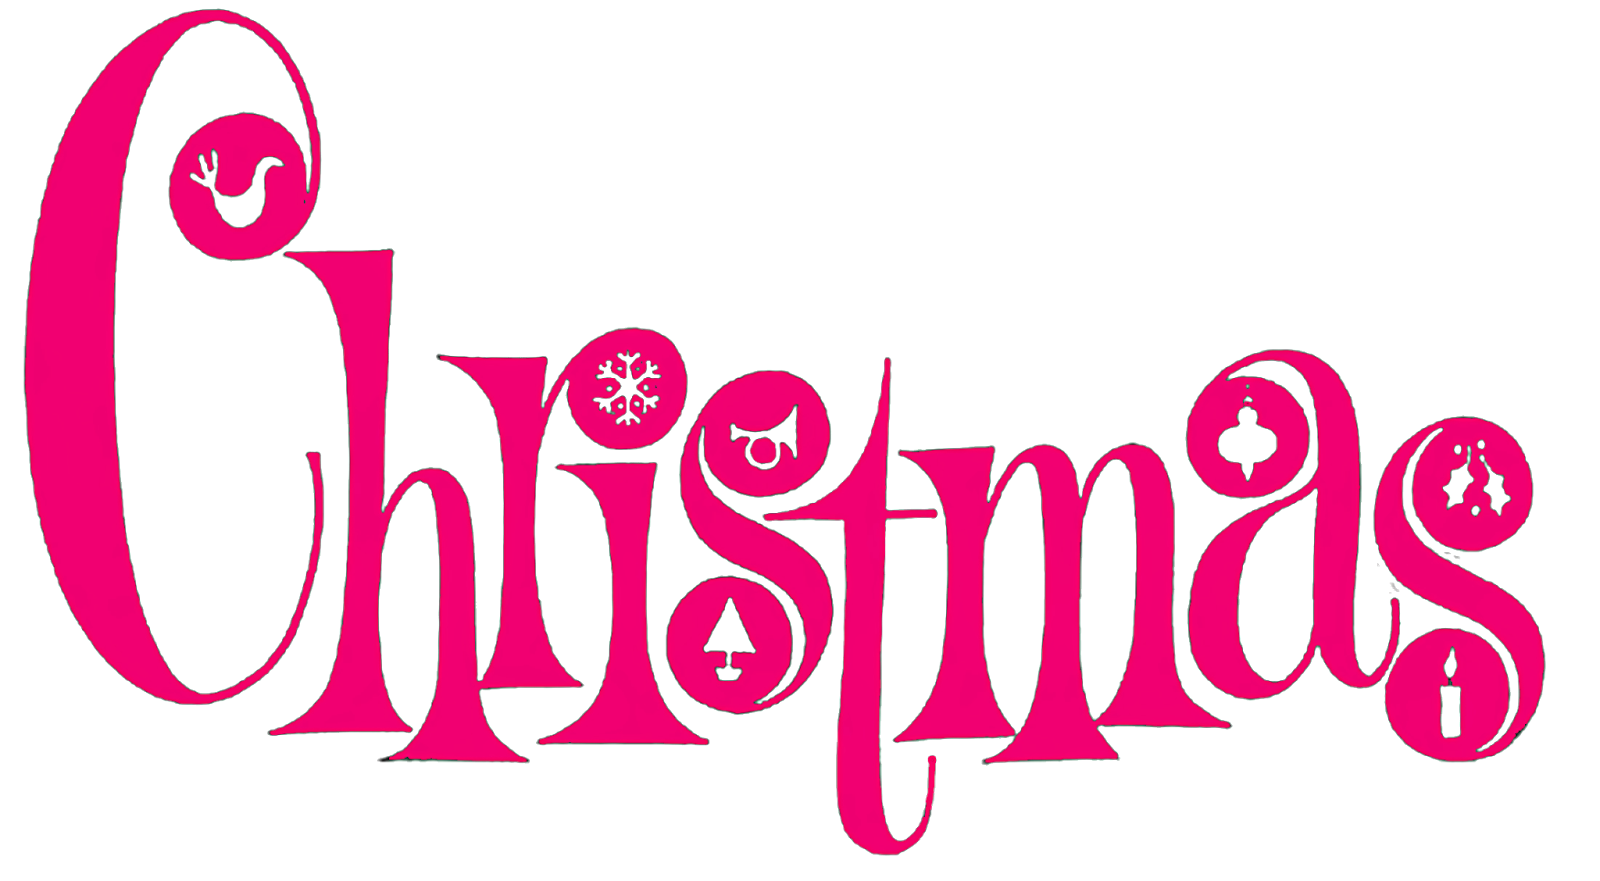 merry christmas and happy new year clip art free - photo #46